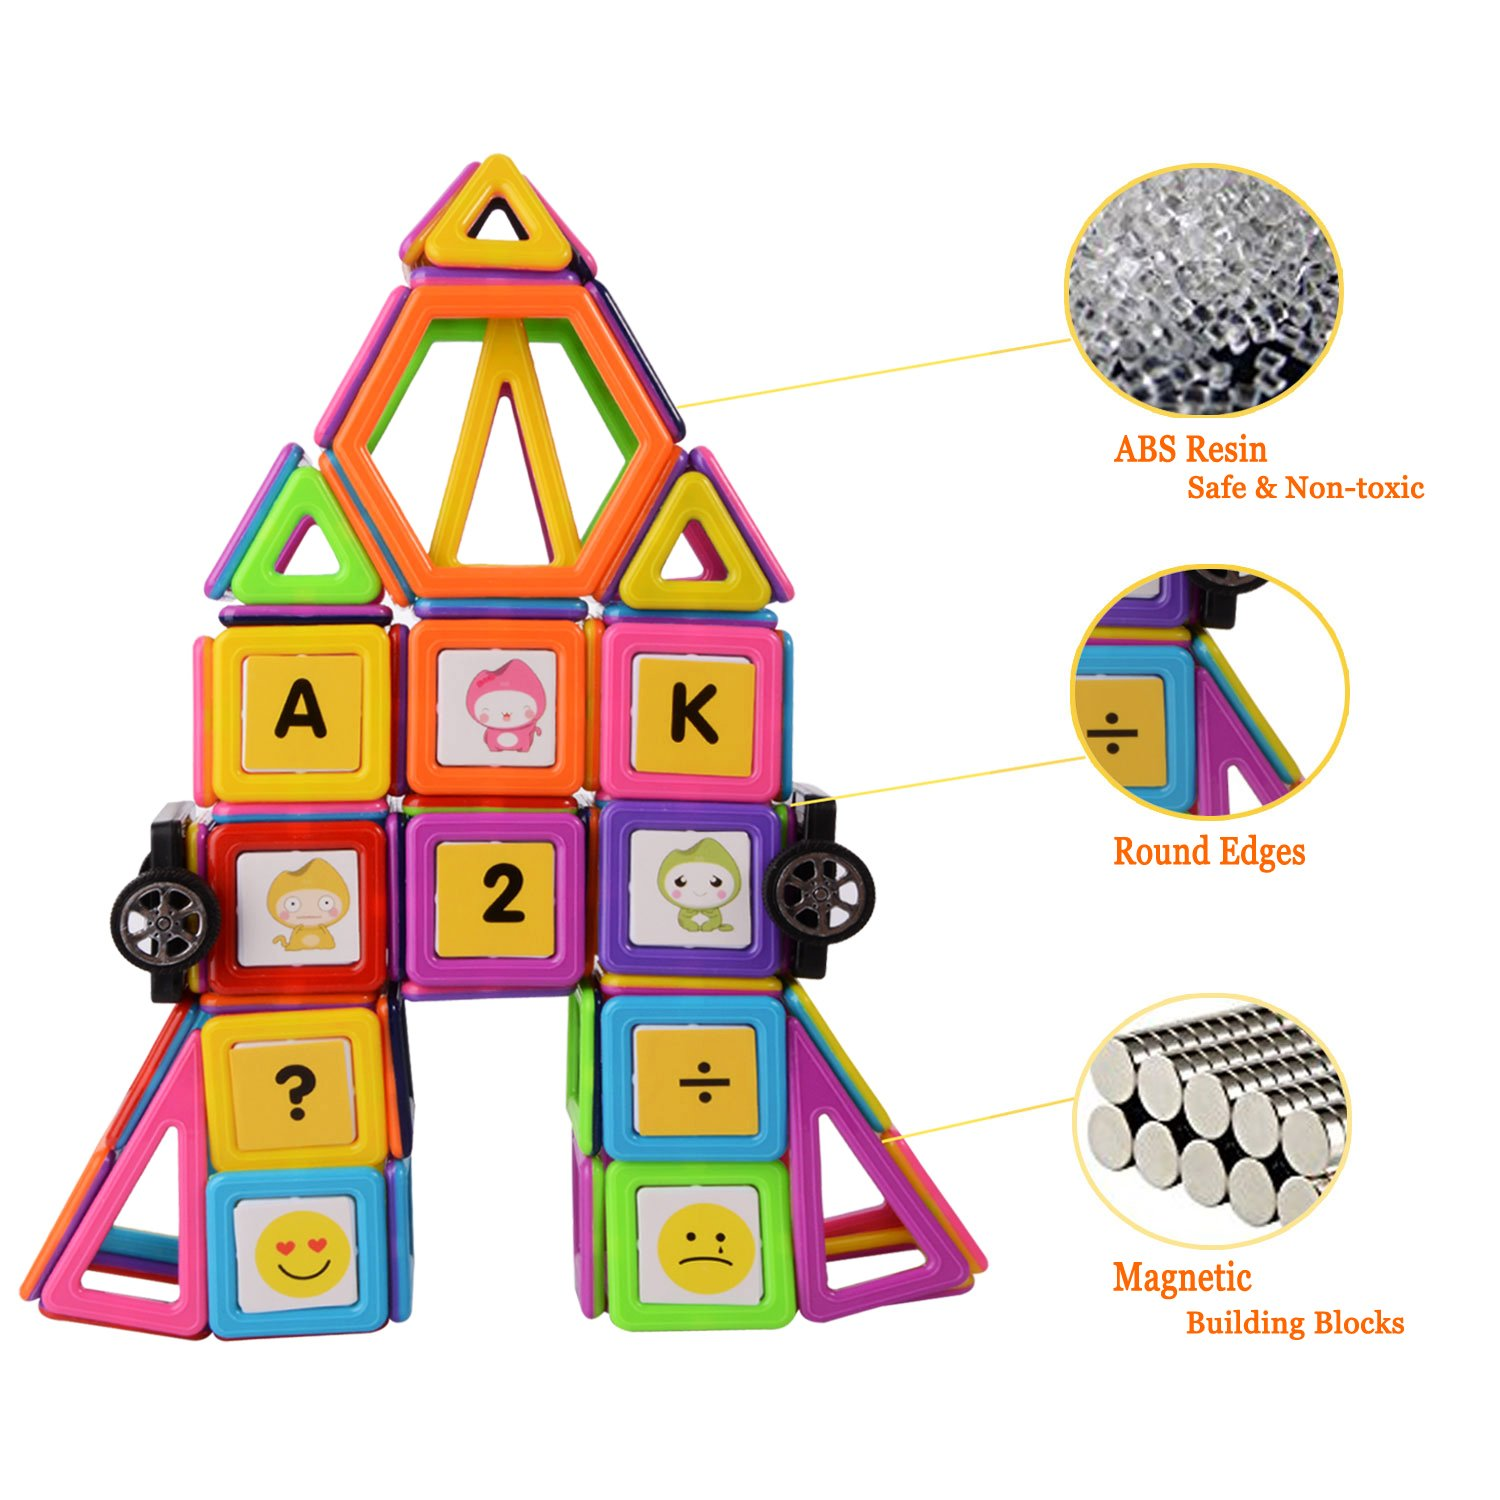 72 Pieces Magnetic Construction Stacking Educational Stacking Toys for Kids and Adults XUELIEE Magnetic Building Blocks Set